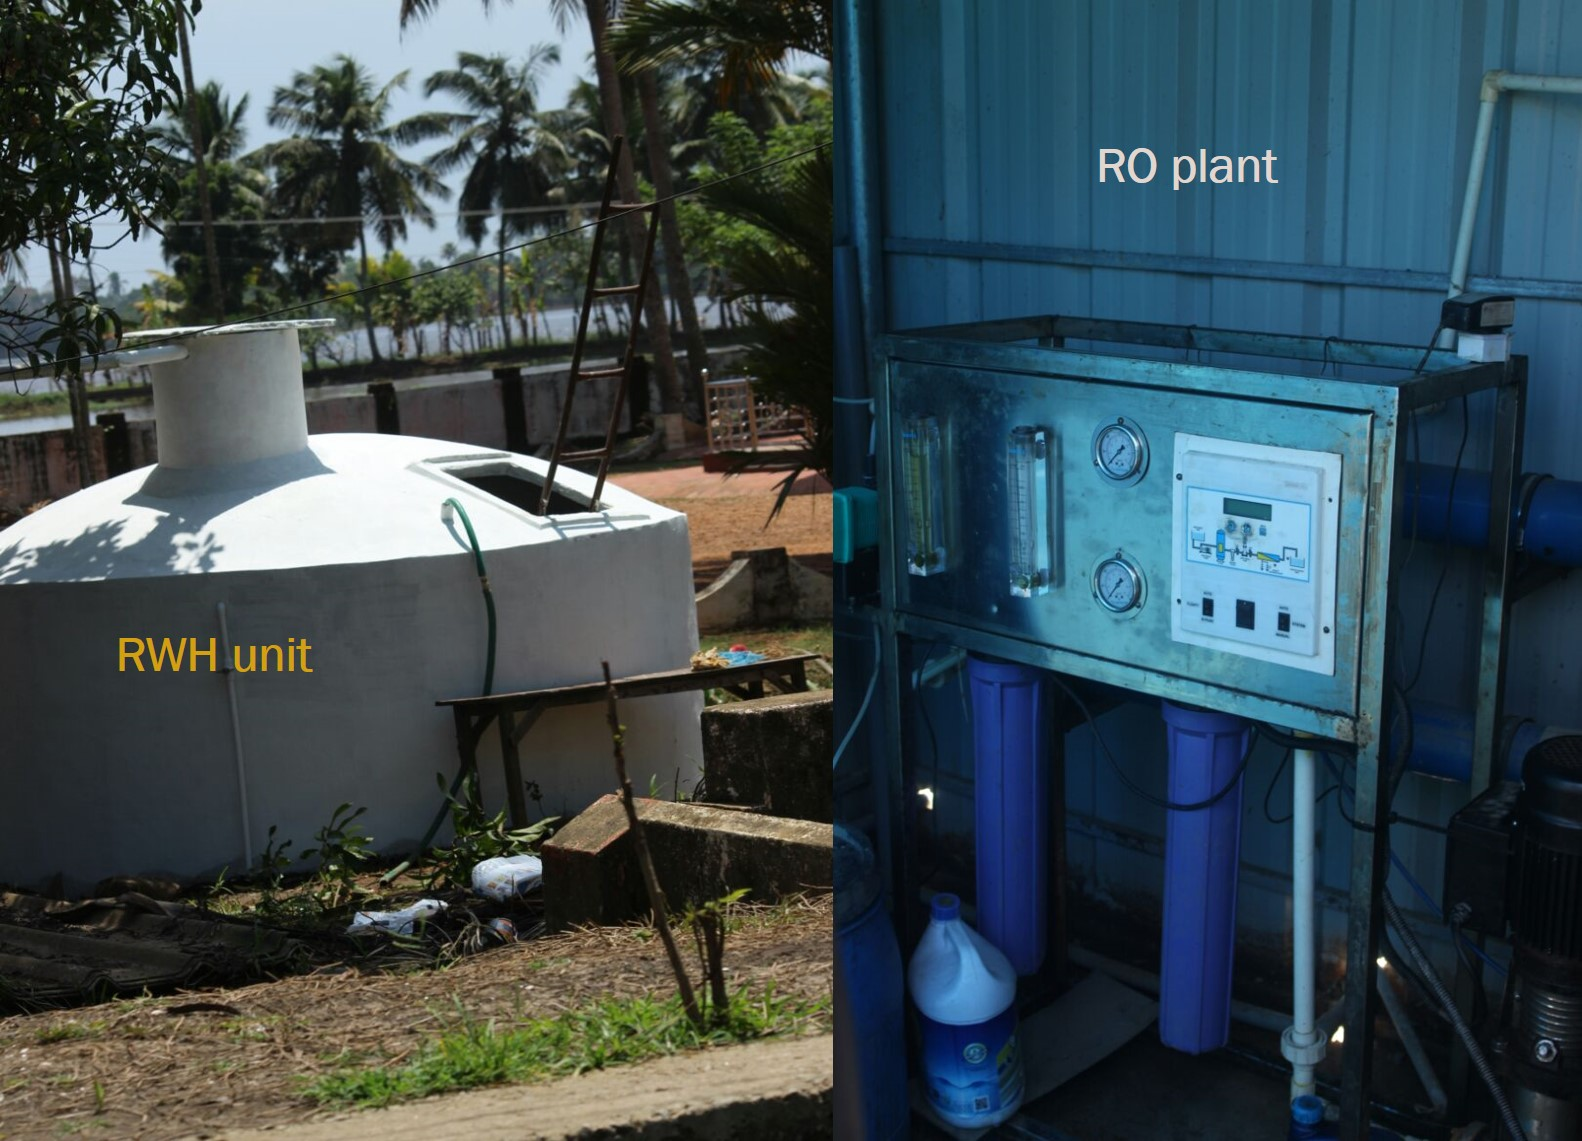 Rainwater harvesting and RO plants are being used as options for water storage and disinfection respectively (Image: Jayasree Vaidyanathan)